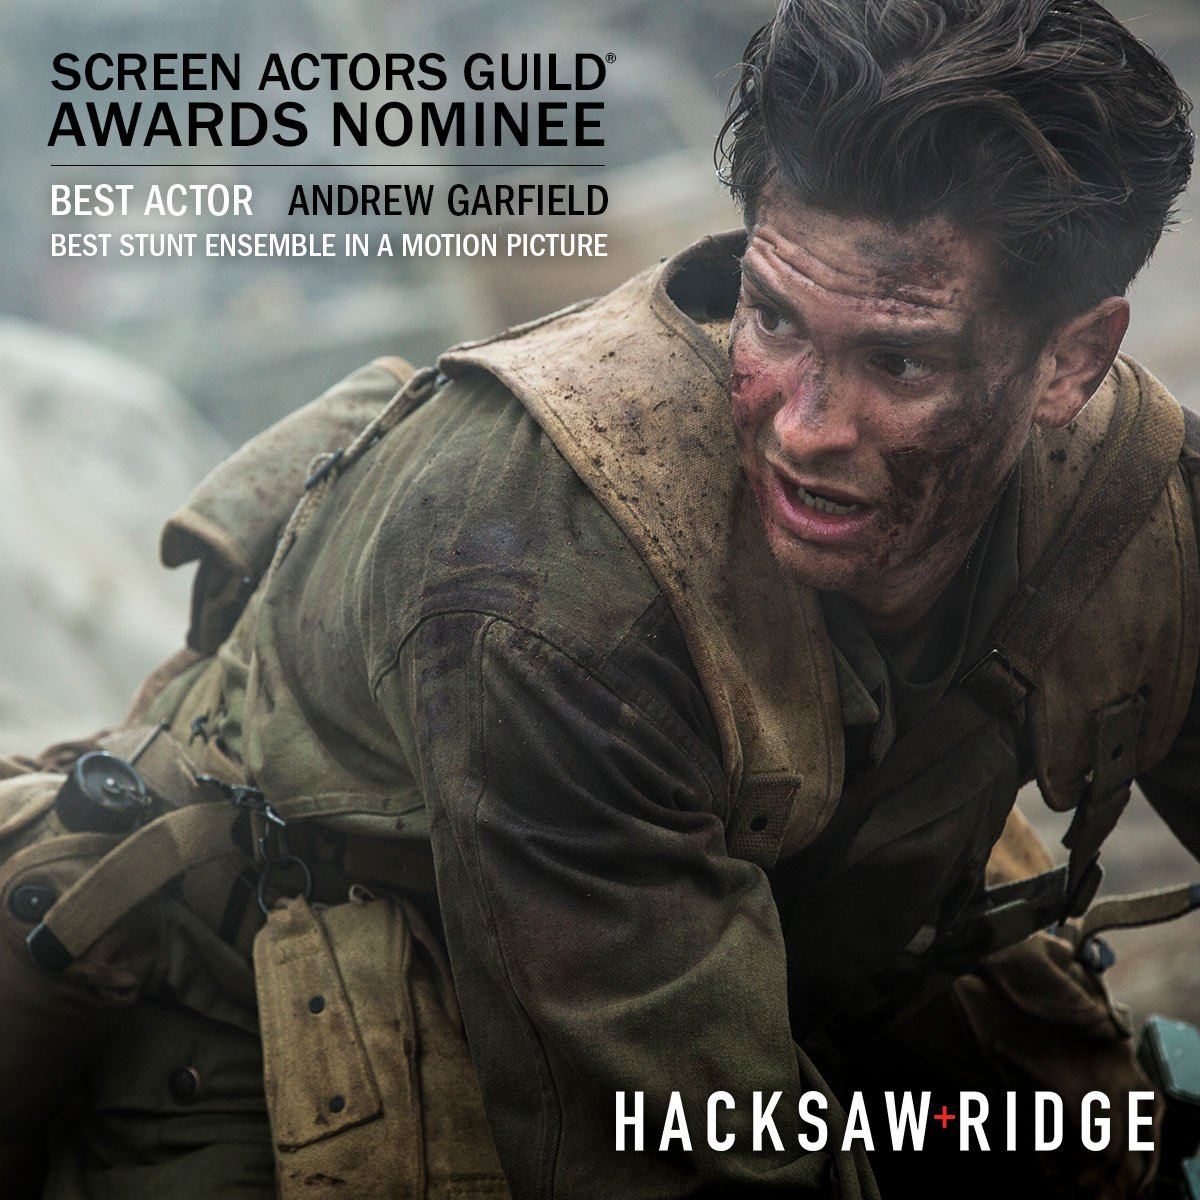 doss single guys Hacksaw ridge directed by mel gibson produced by terry benedict paul  as an army medic doss single-handedly evacuated  just as the men are to begin.